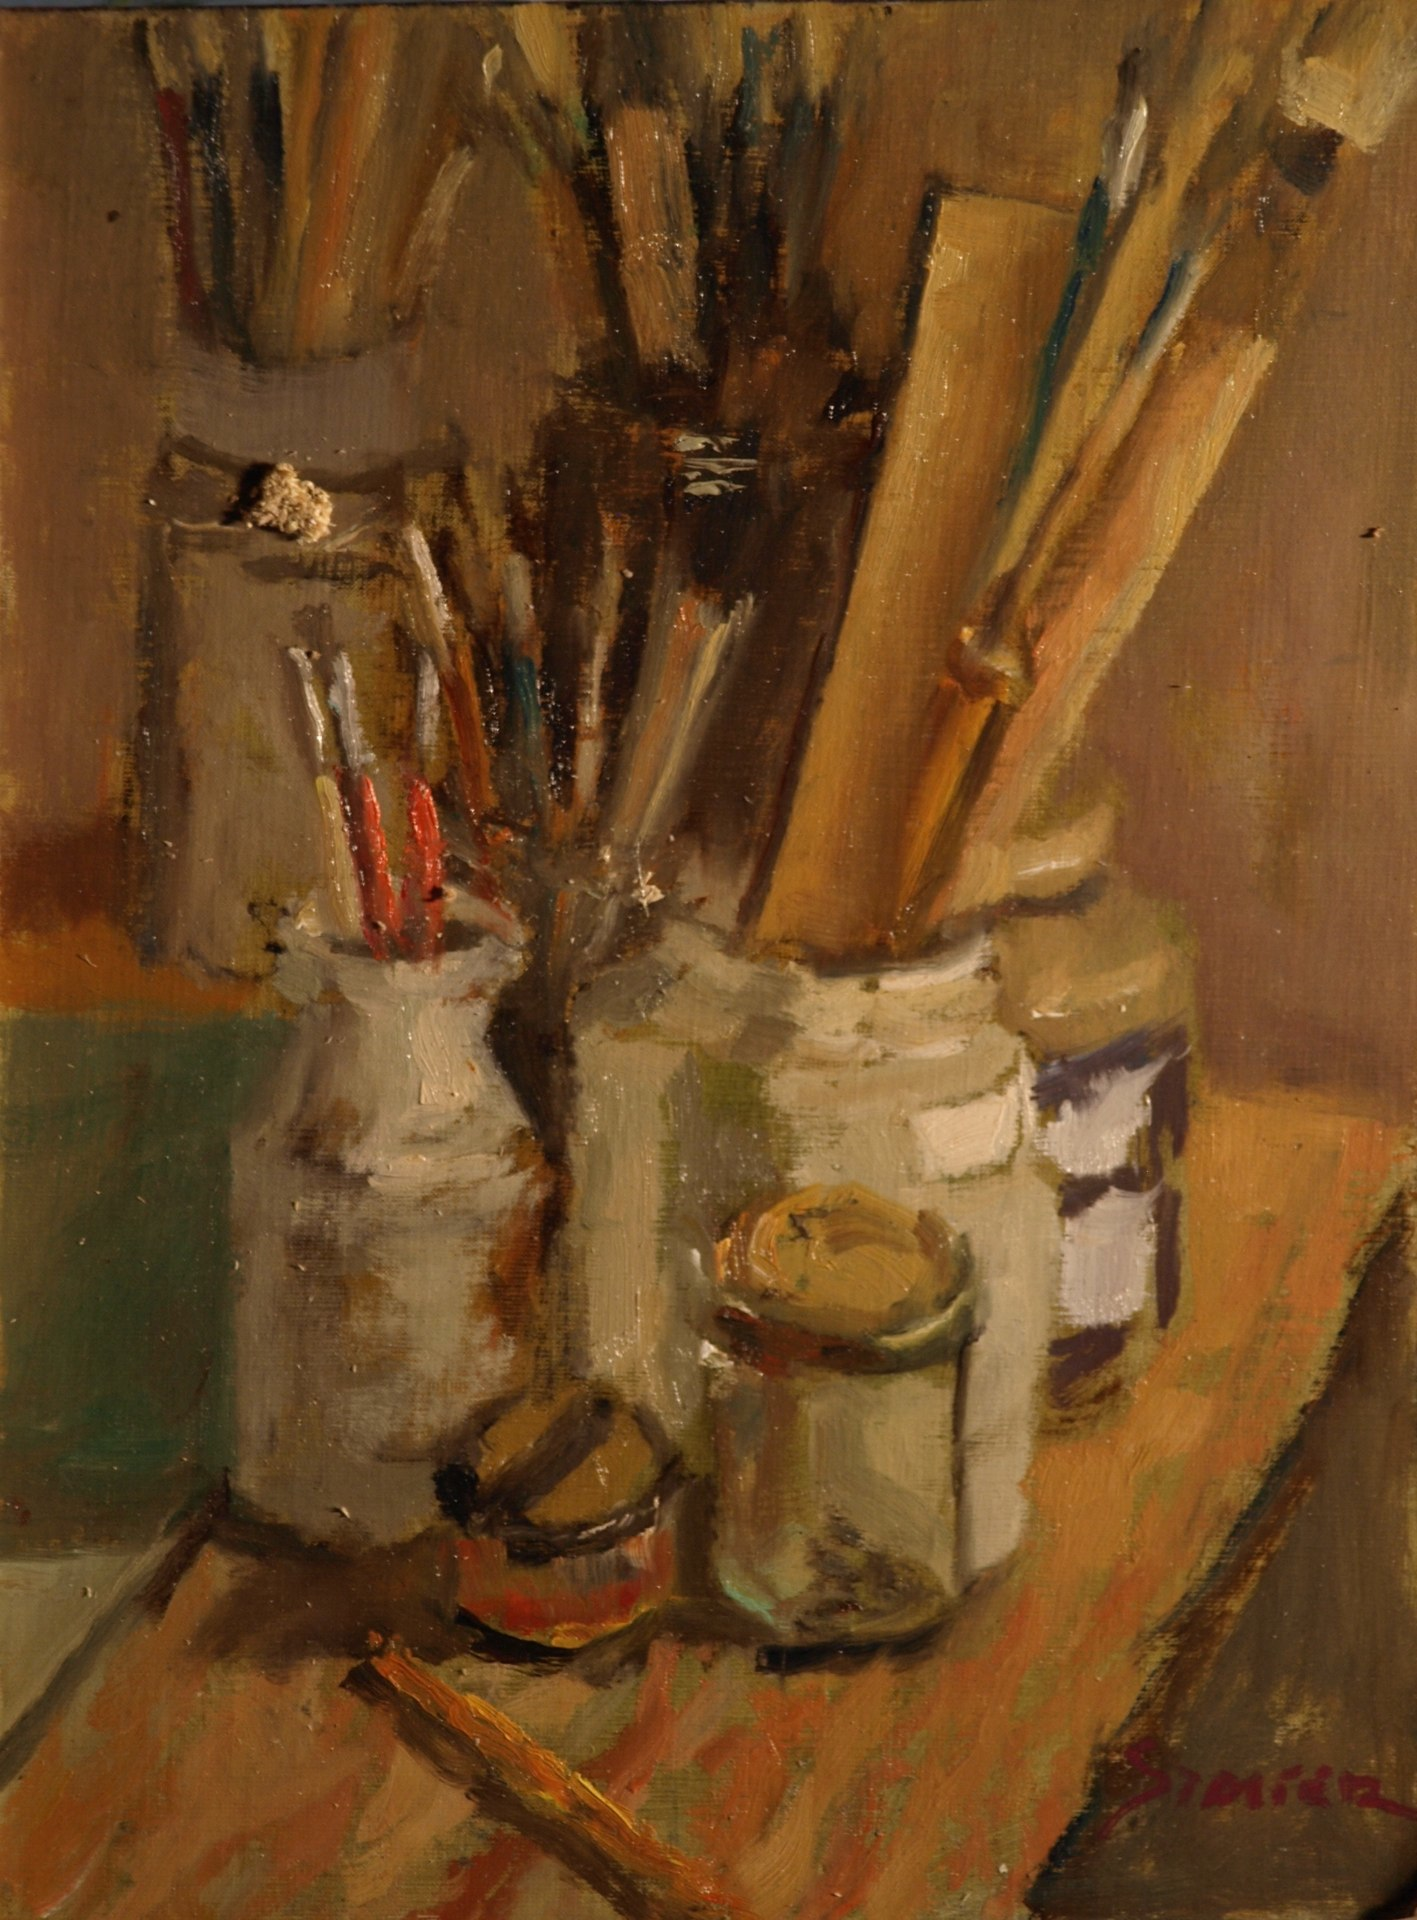 Jars of Brushes, Oil on Panel, 12 x 9 Inches, by Richard Stalter, $225